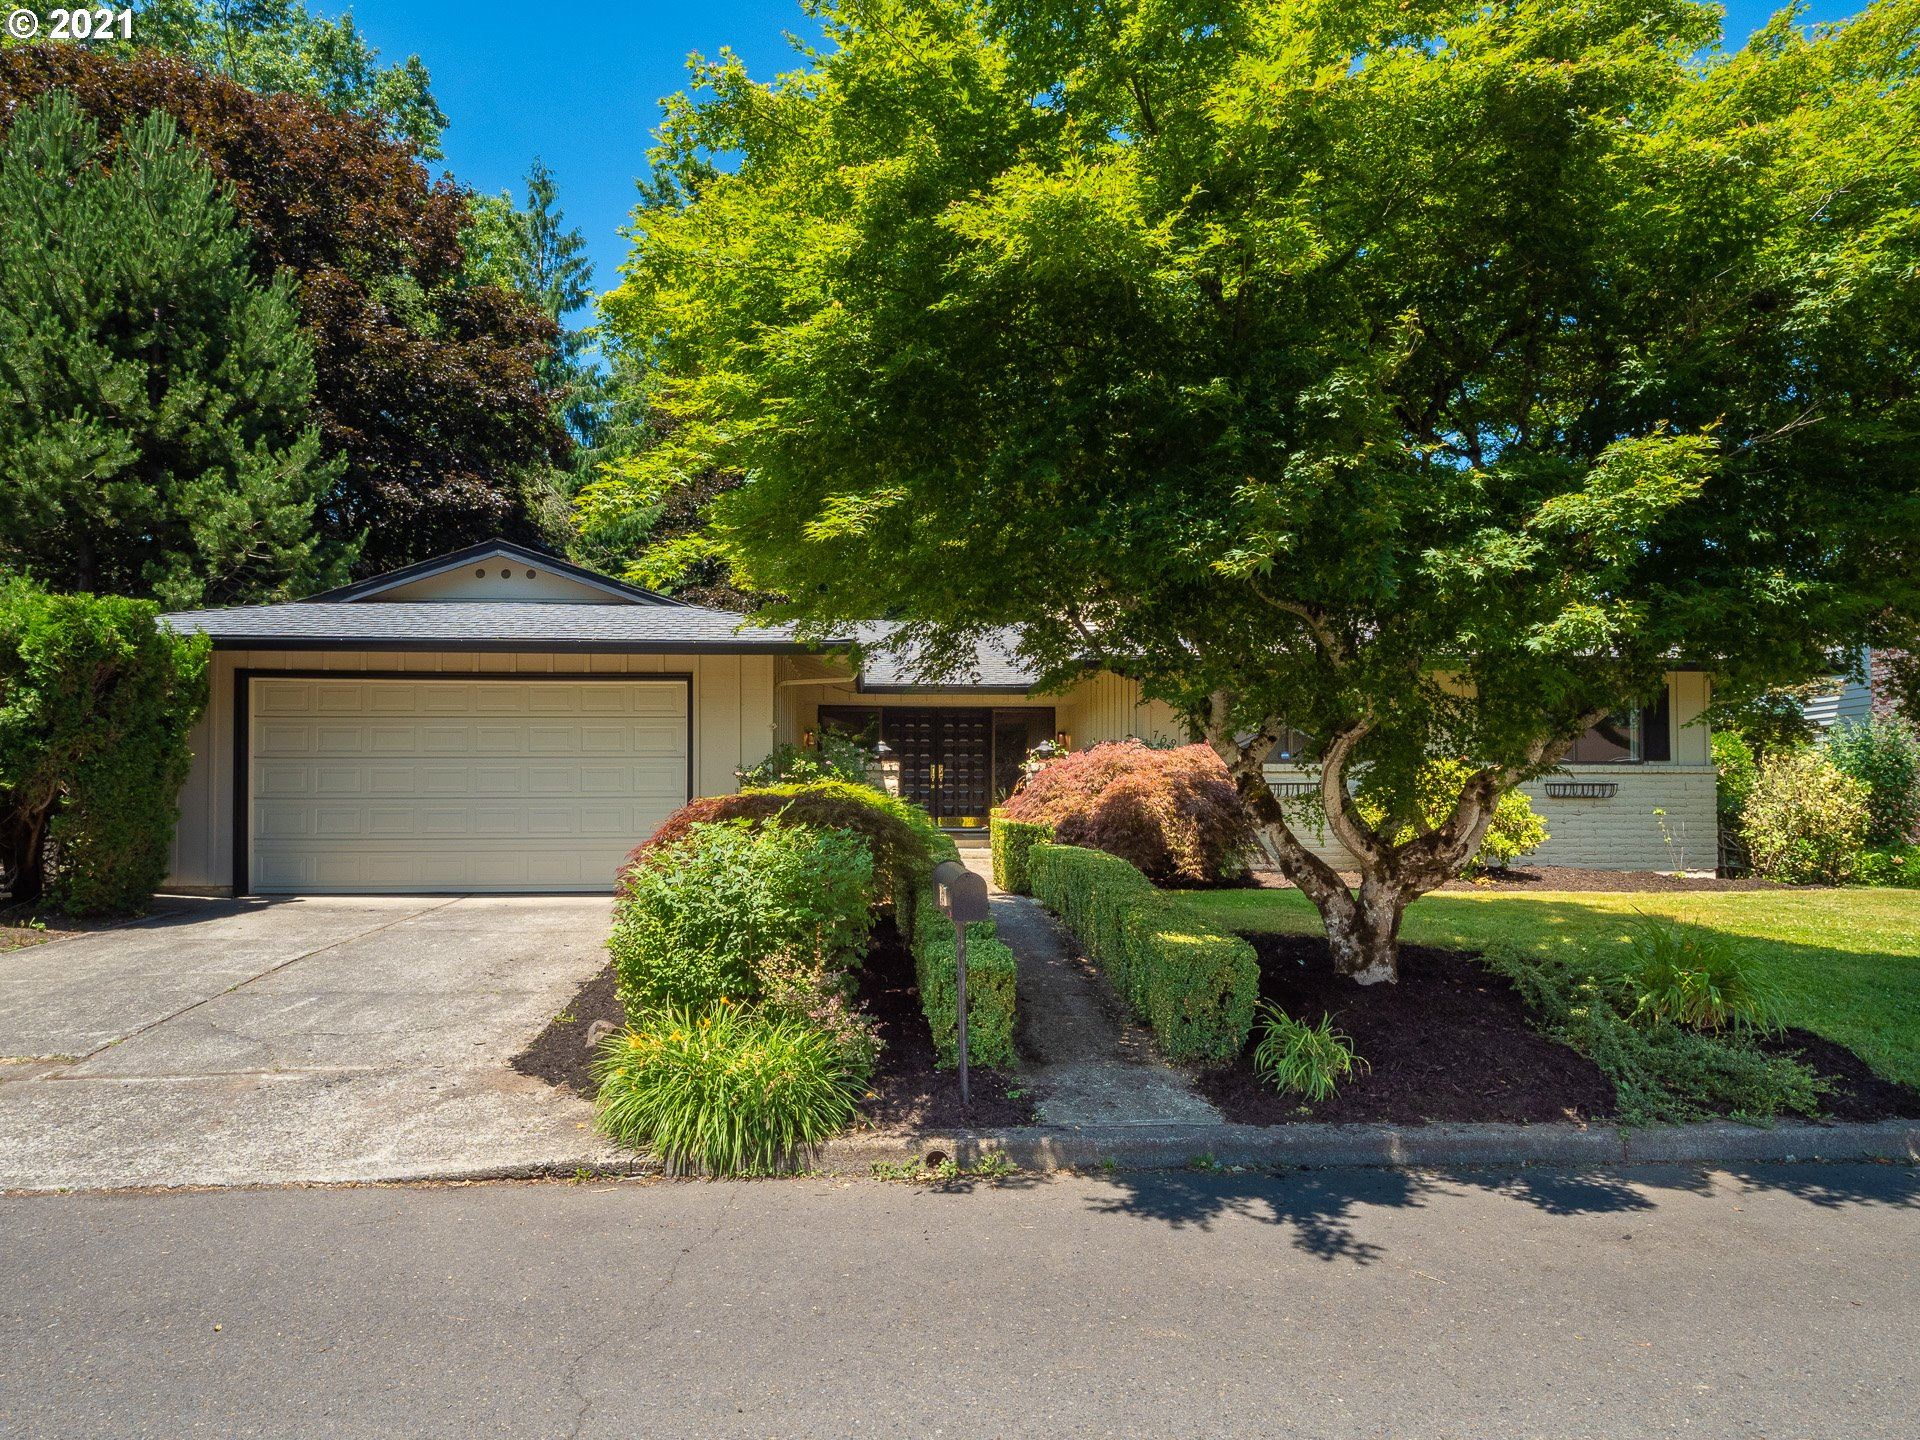 759 TIMBERLINE DR, Lake Oswego, OR 97034 - MLS#: 21369537